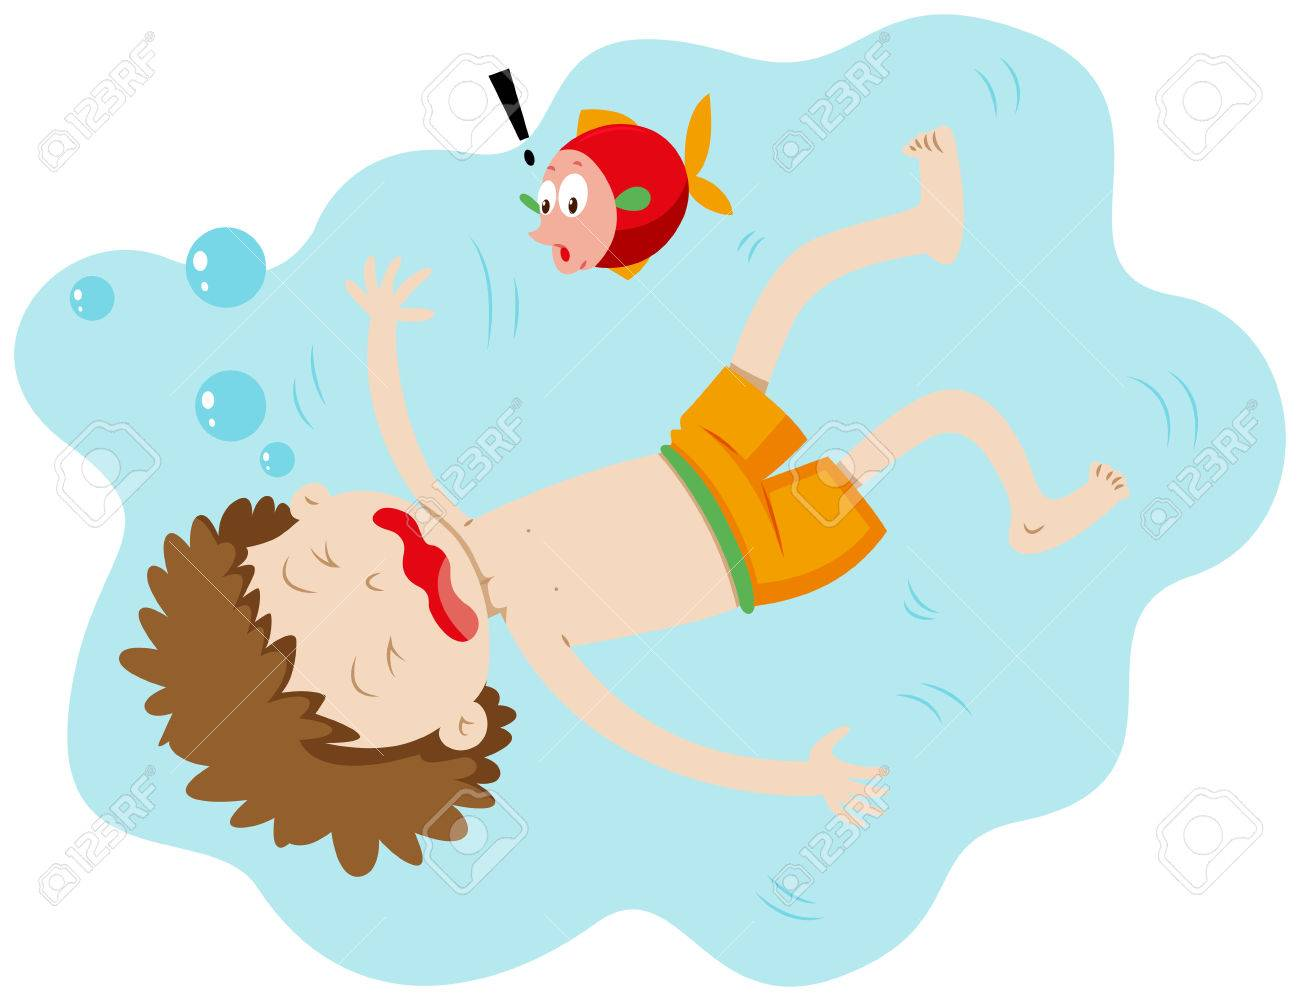 Little boy drowning under the water illustration.